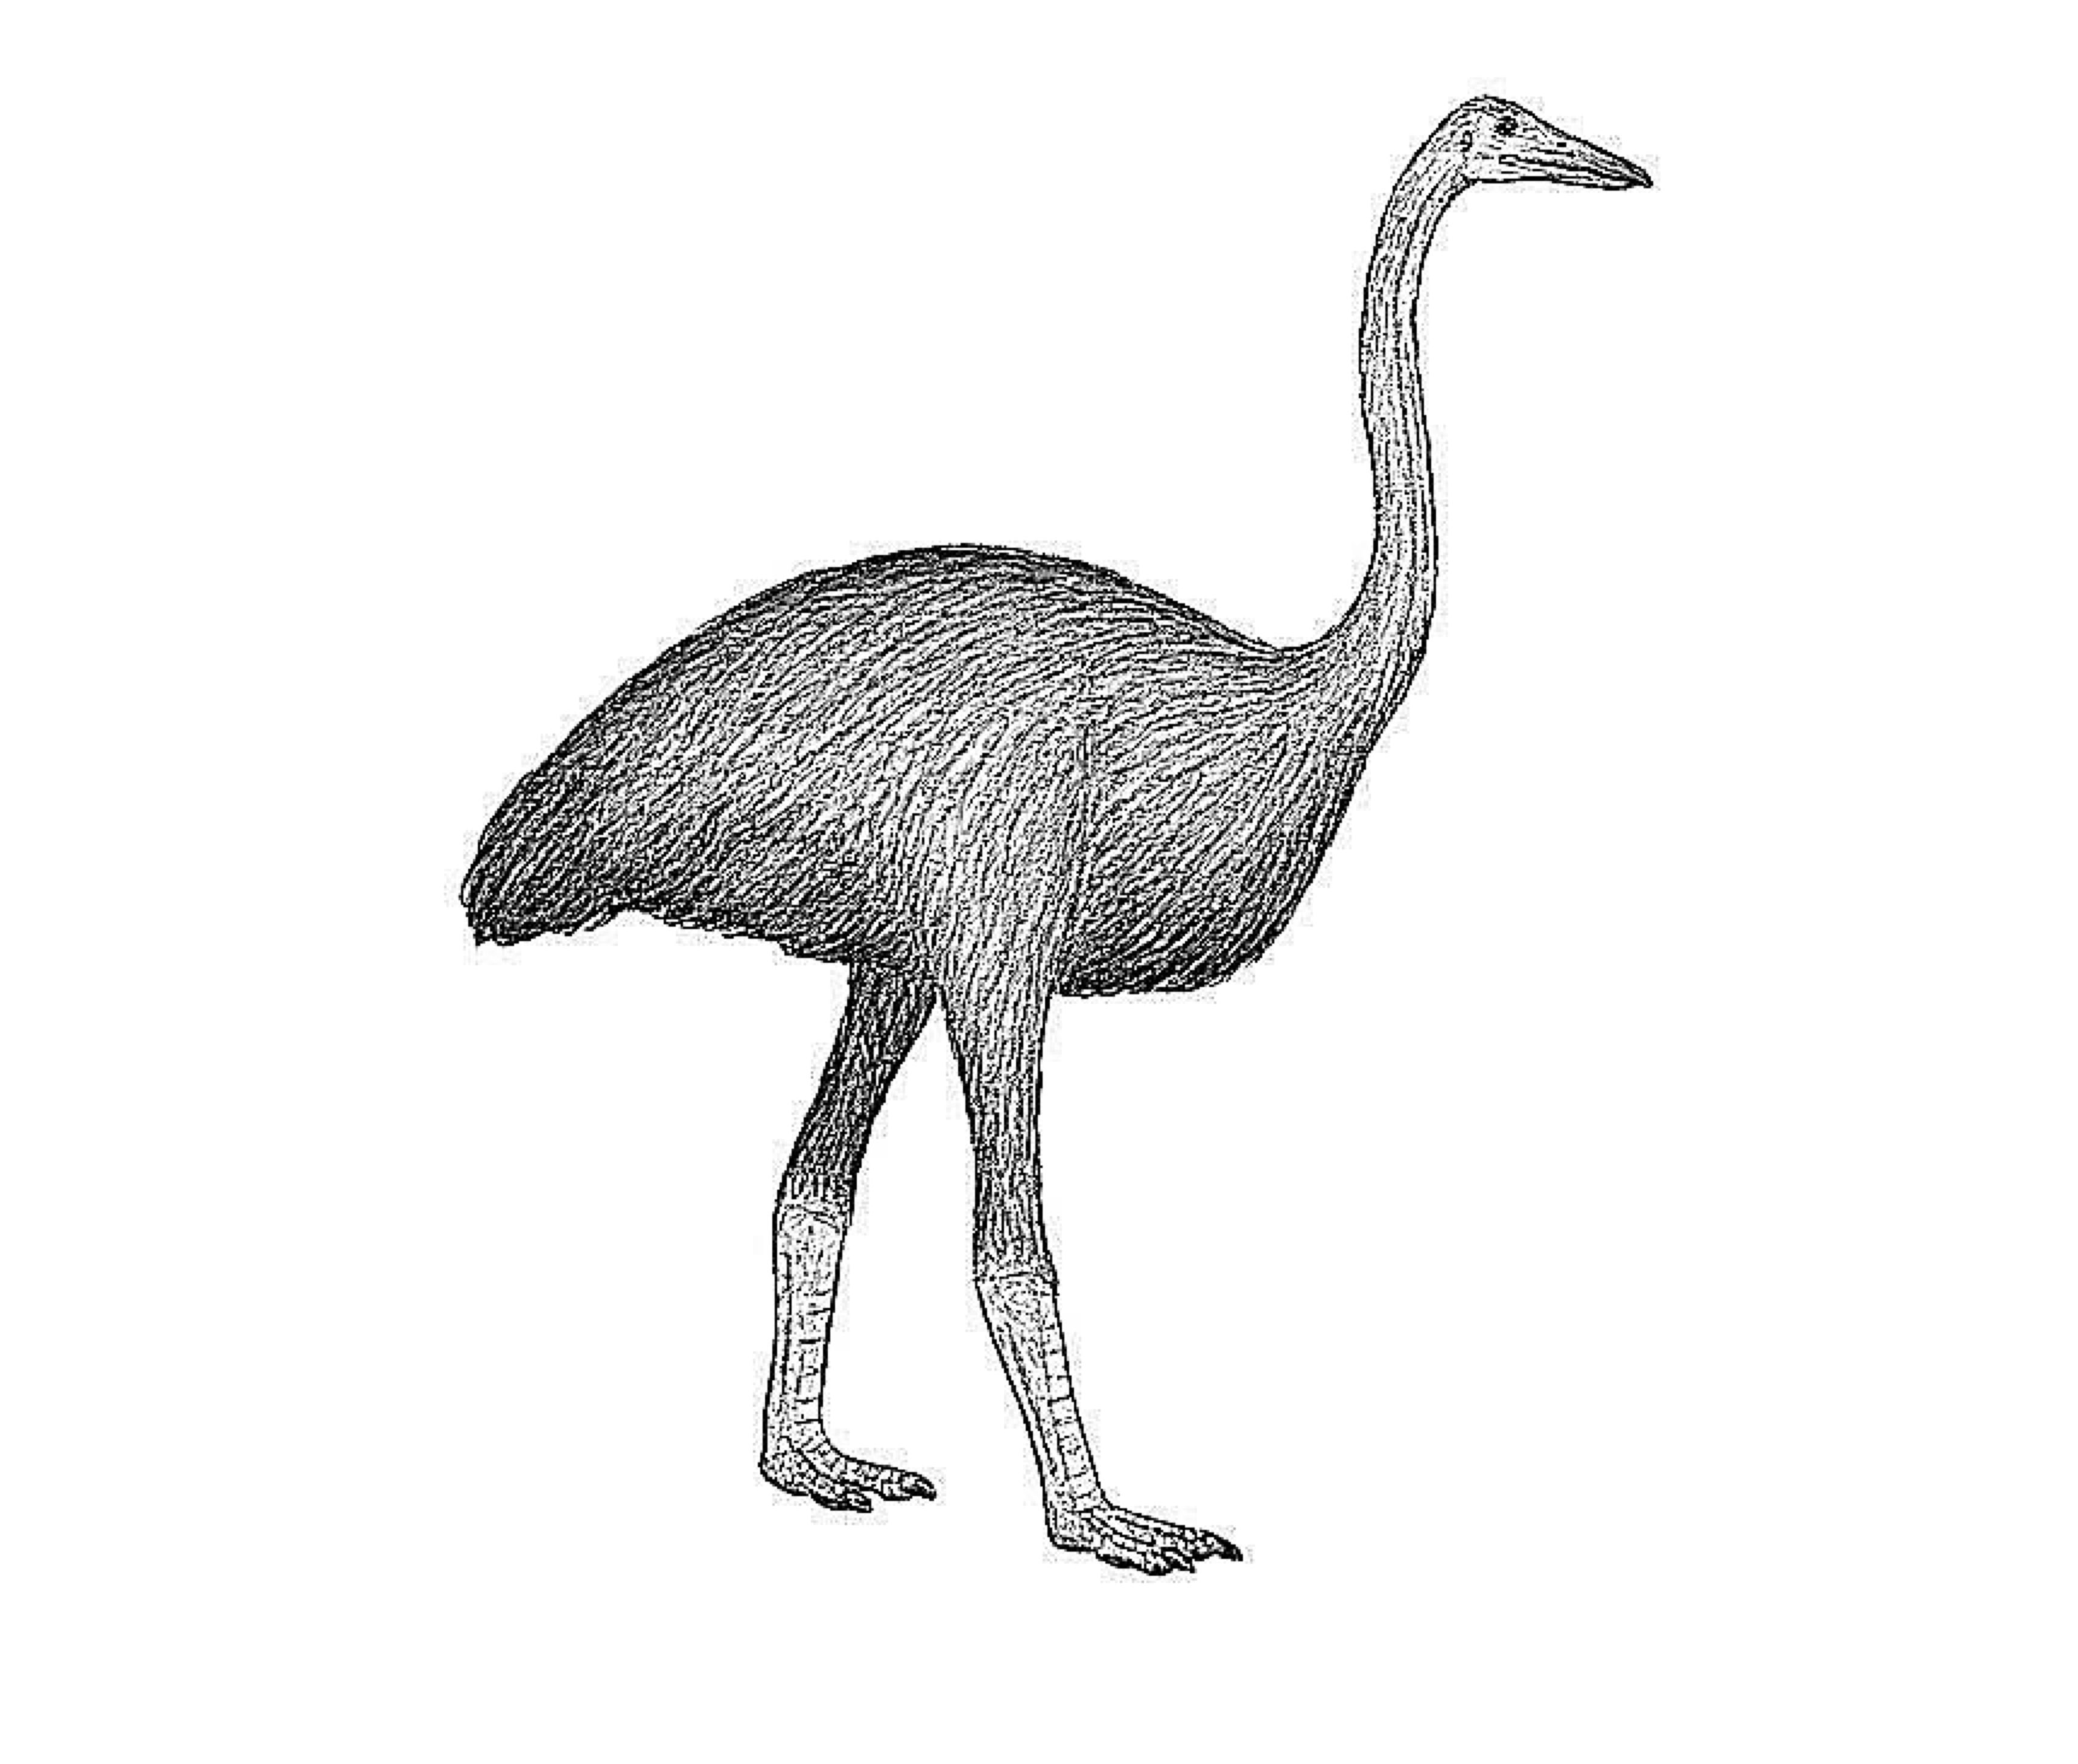 10 Interesting Facts About Giant Elephant Birds